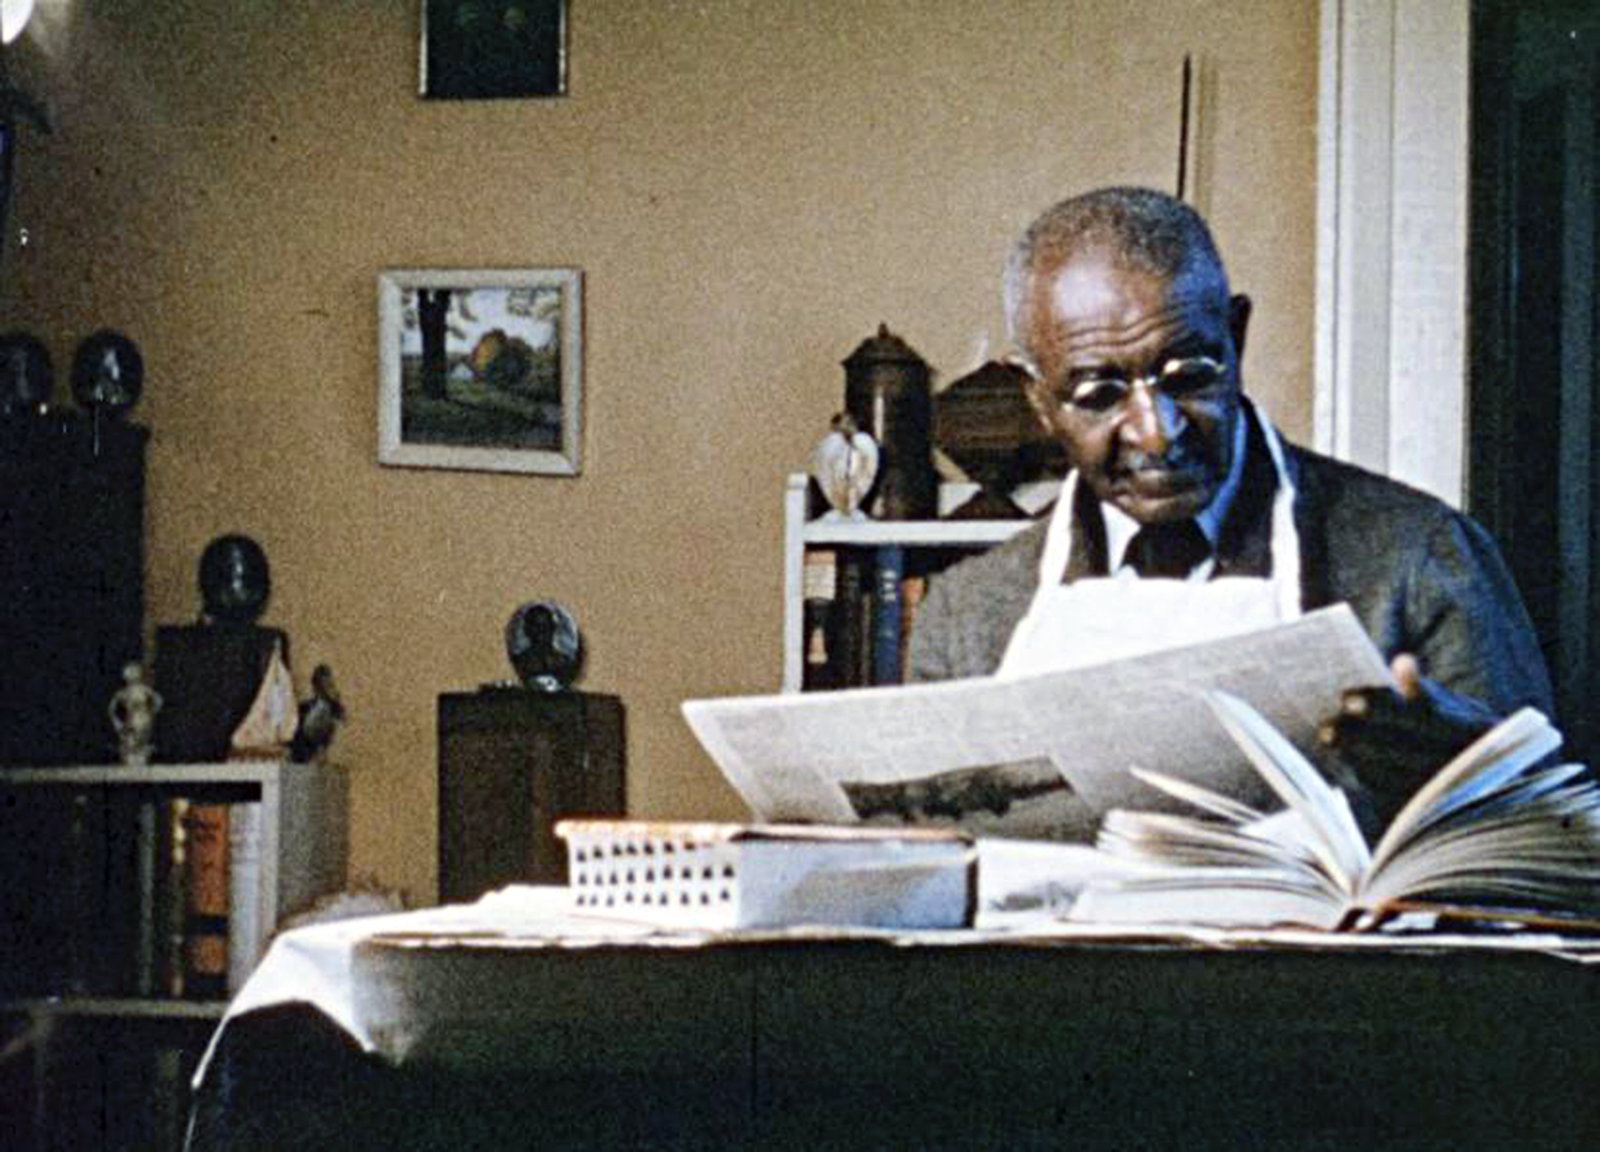 Moving Image Film Related to George Washington Carver